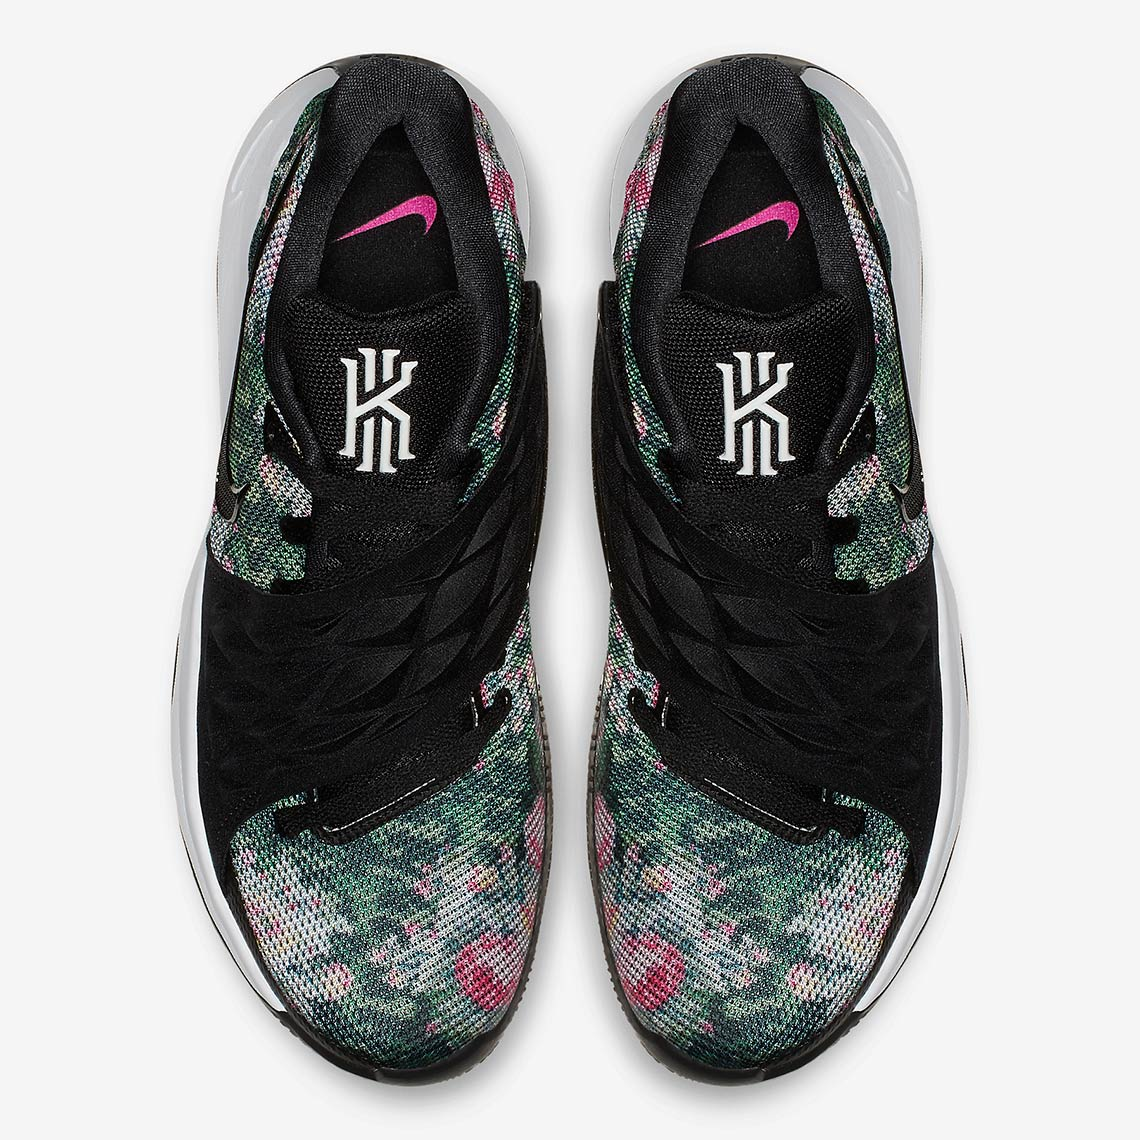 36c958164a32 Nike Kyrie Low 1 Floral AO8979-002 Release Date